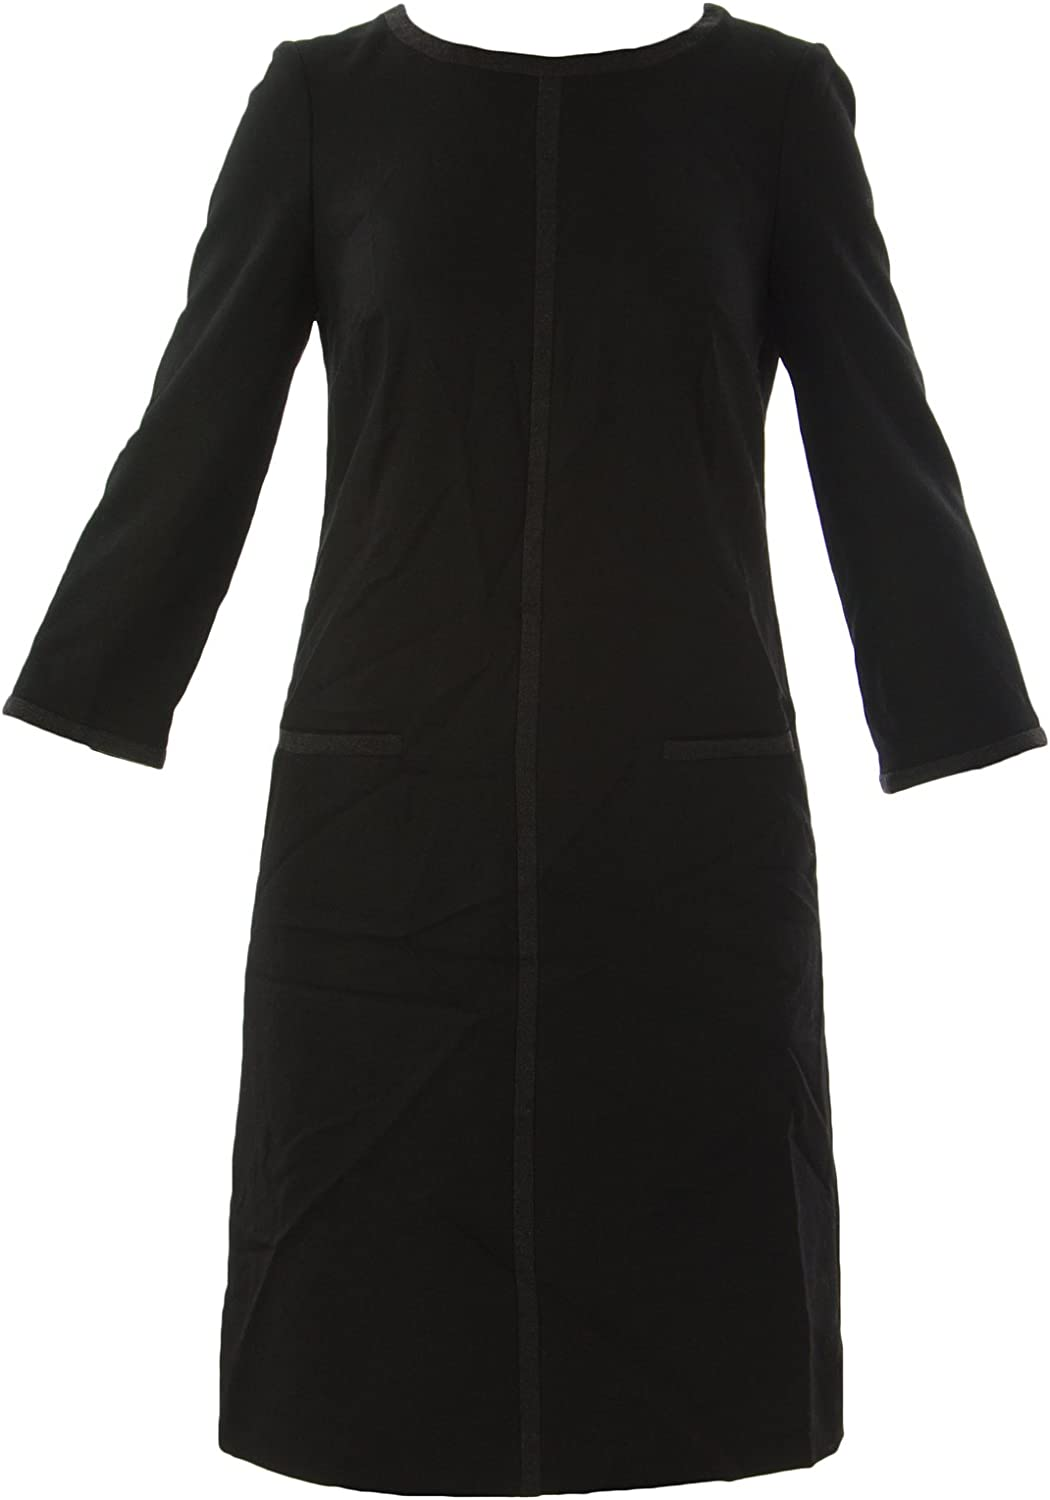 BODEN Women's Tipped Wool Shift Dress US Sz 2R Black